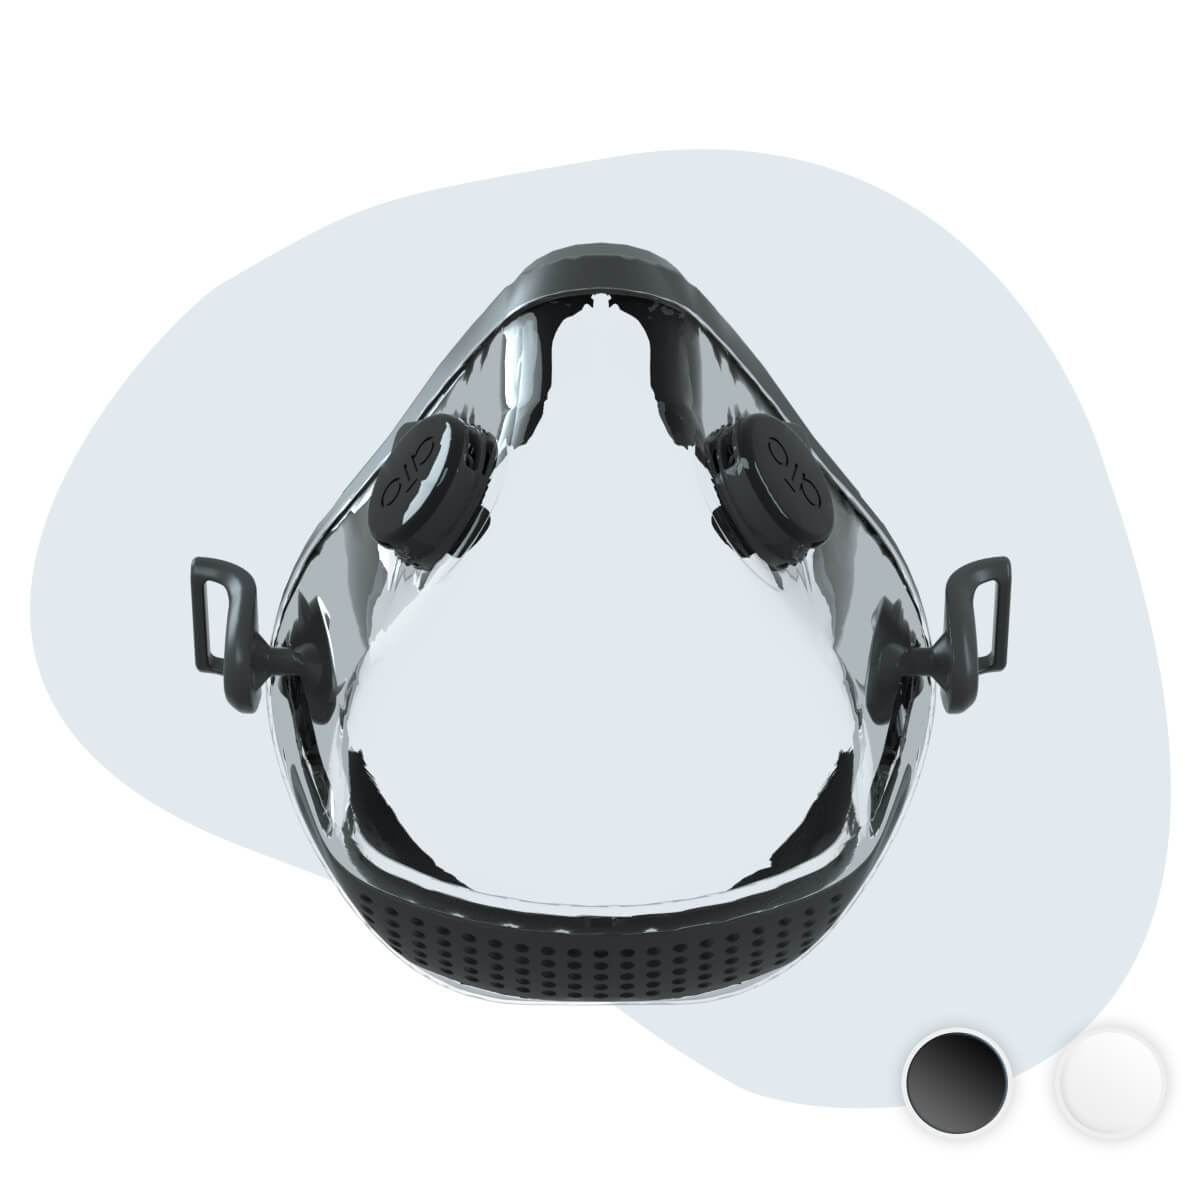 AIO Mask Basic - black & grey front view with valves - transparent mouth and nose cover